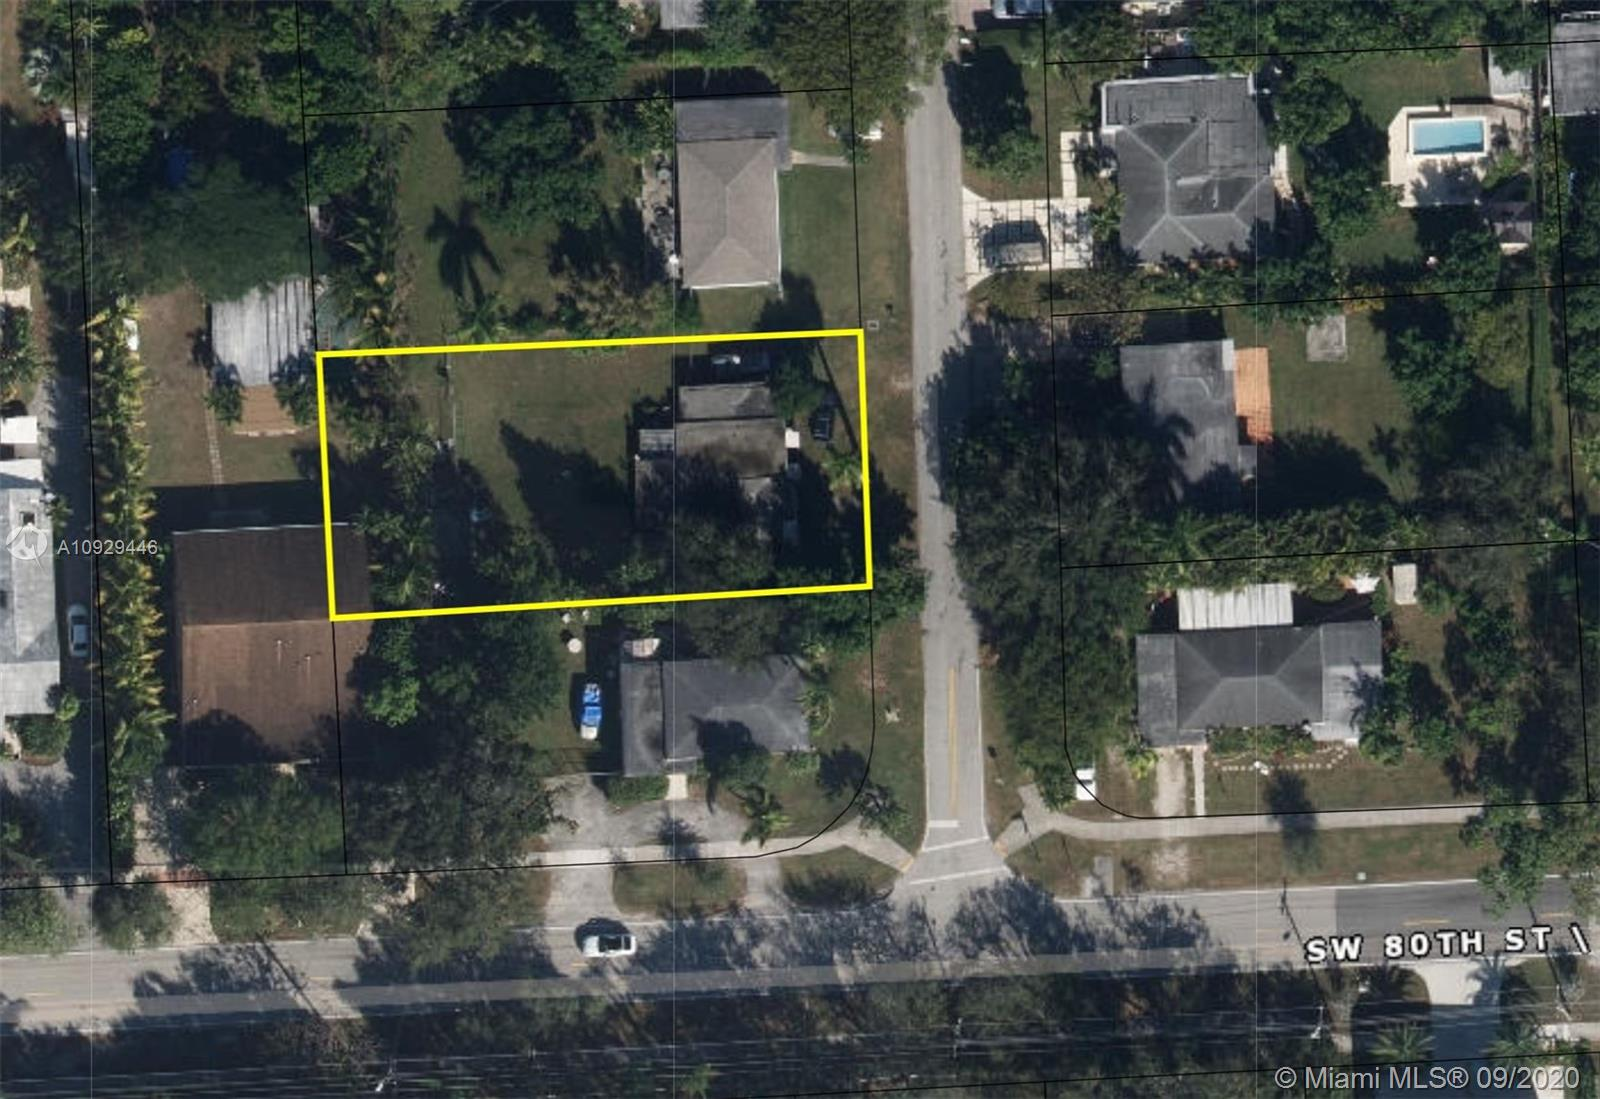 South Miami Land or Extreme Makeover.  Renovate or Rebuild.  So much potential!  This 1951, 2/1, 1,181 sf home on 10,061 sf lot (74'x135') west of US 1 is a solid CBS structure featuring open-beam ceiling, terrazzo floors, enclosed Florida room, CBS shed, carport, functional layout, good bones in great location.